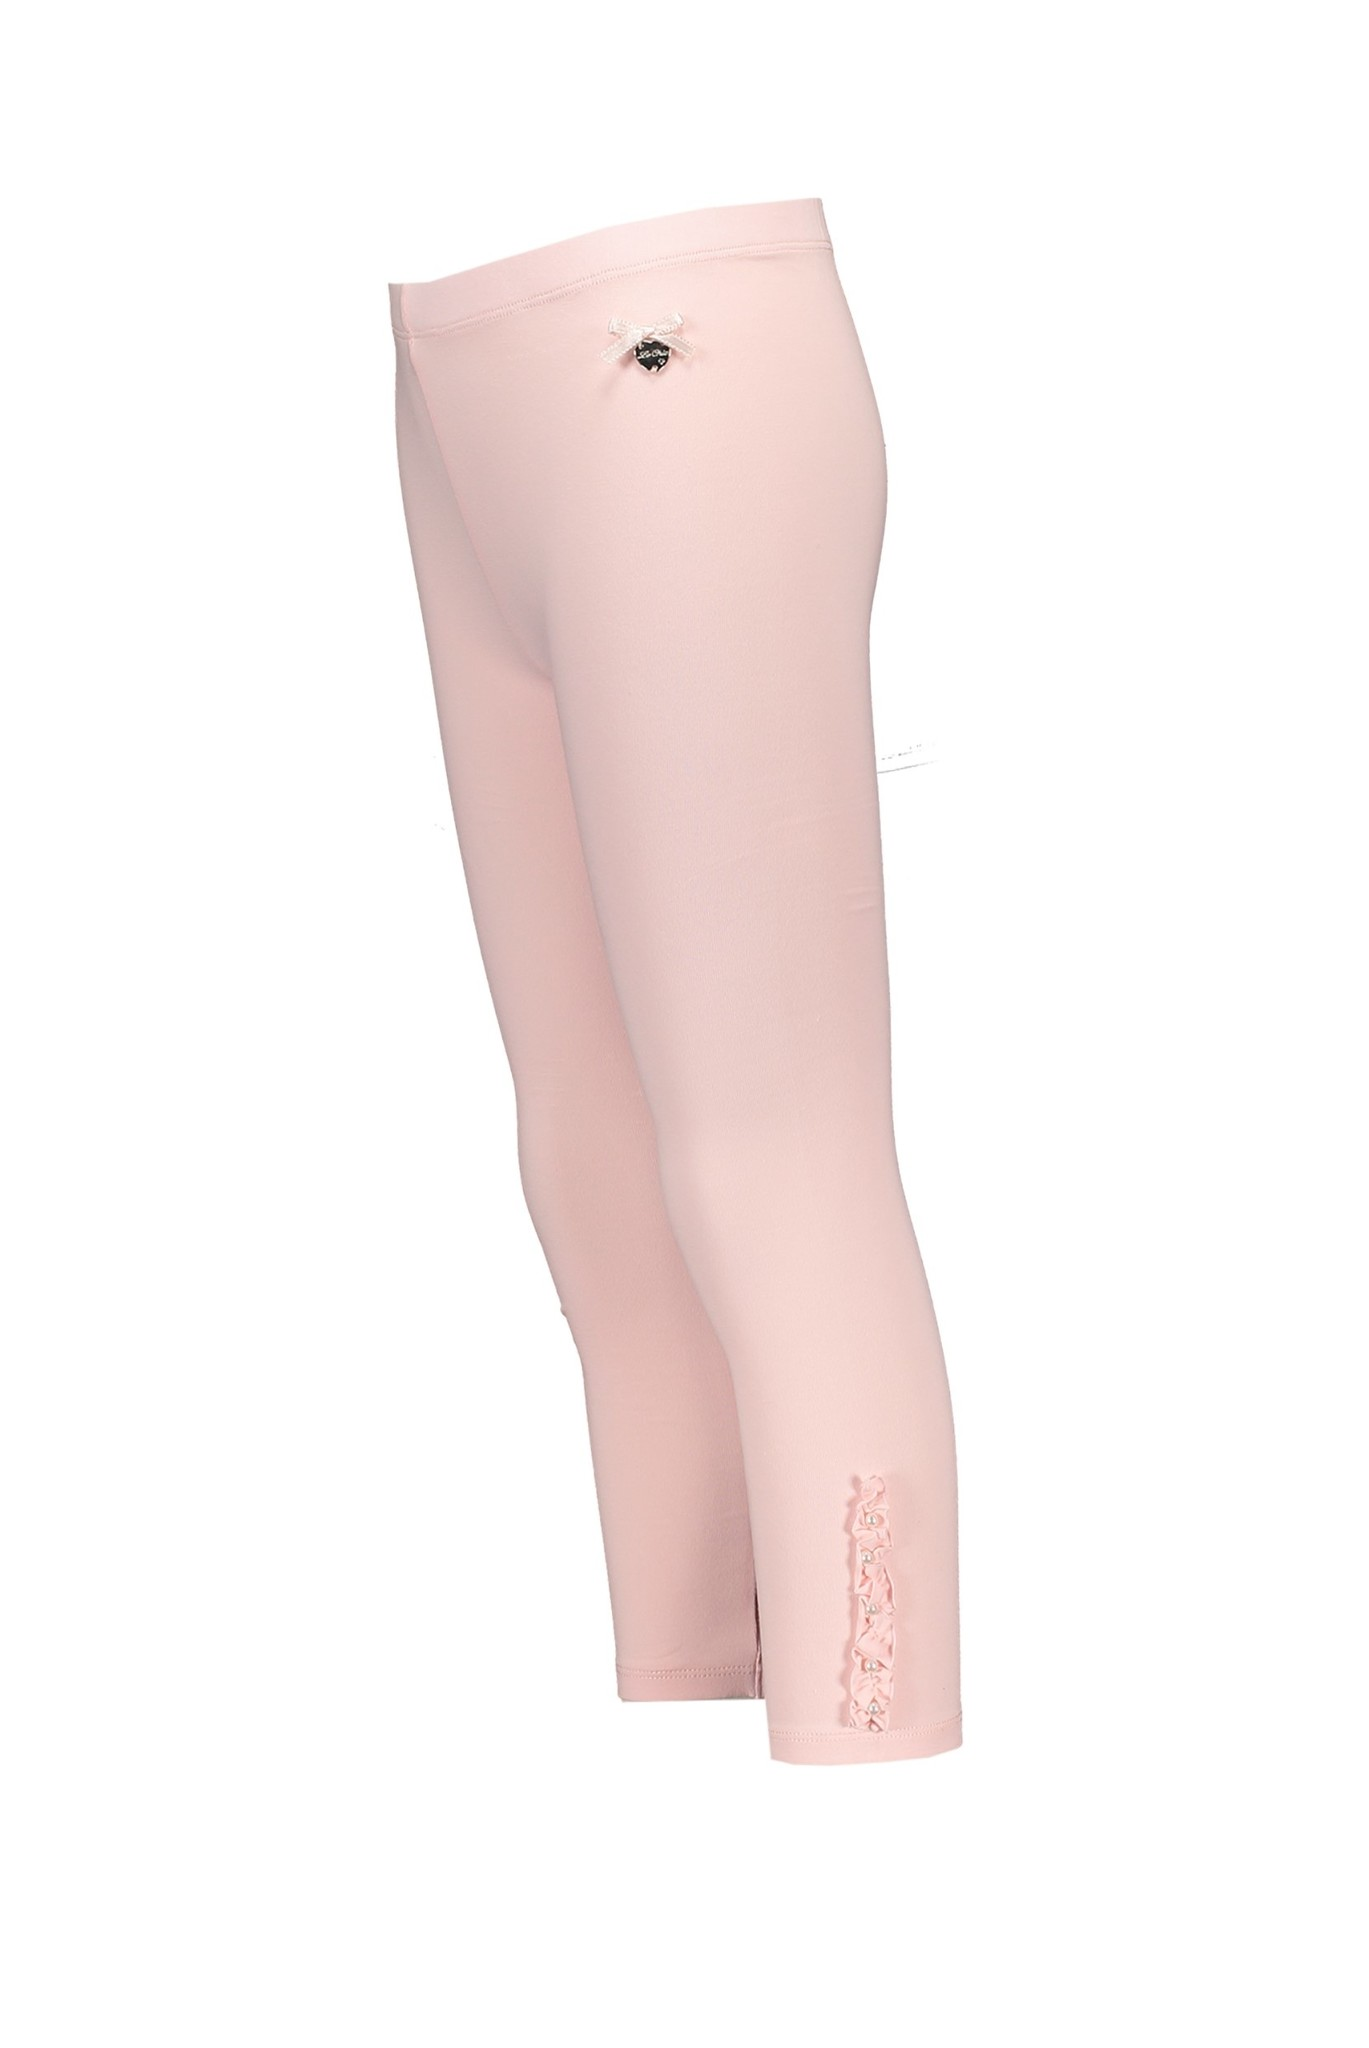 Lechic Le Chic Ruffle & Pearl Pink Legging